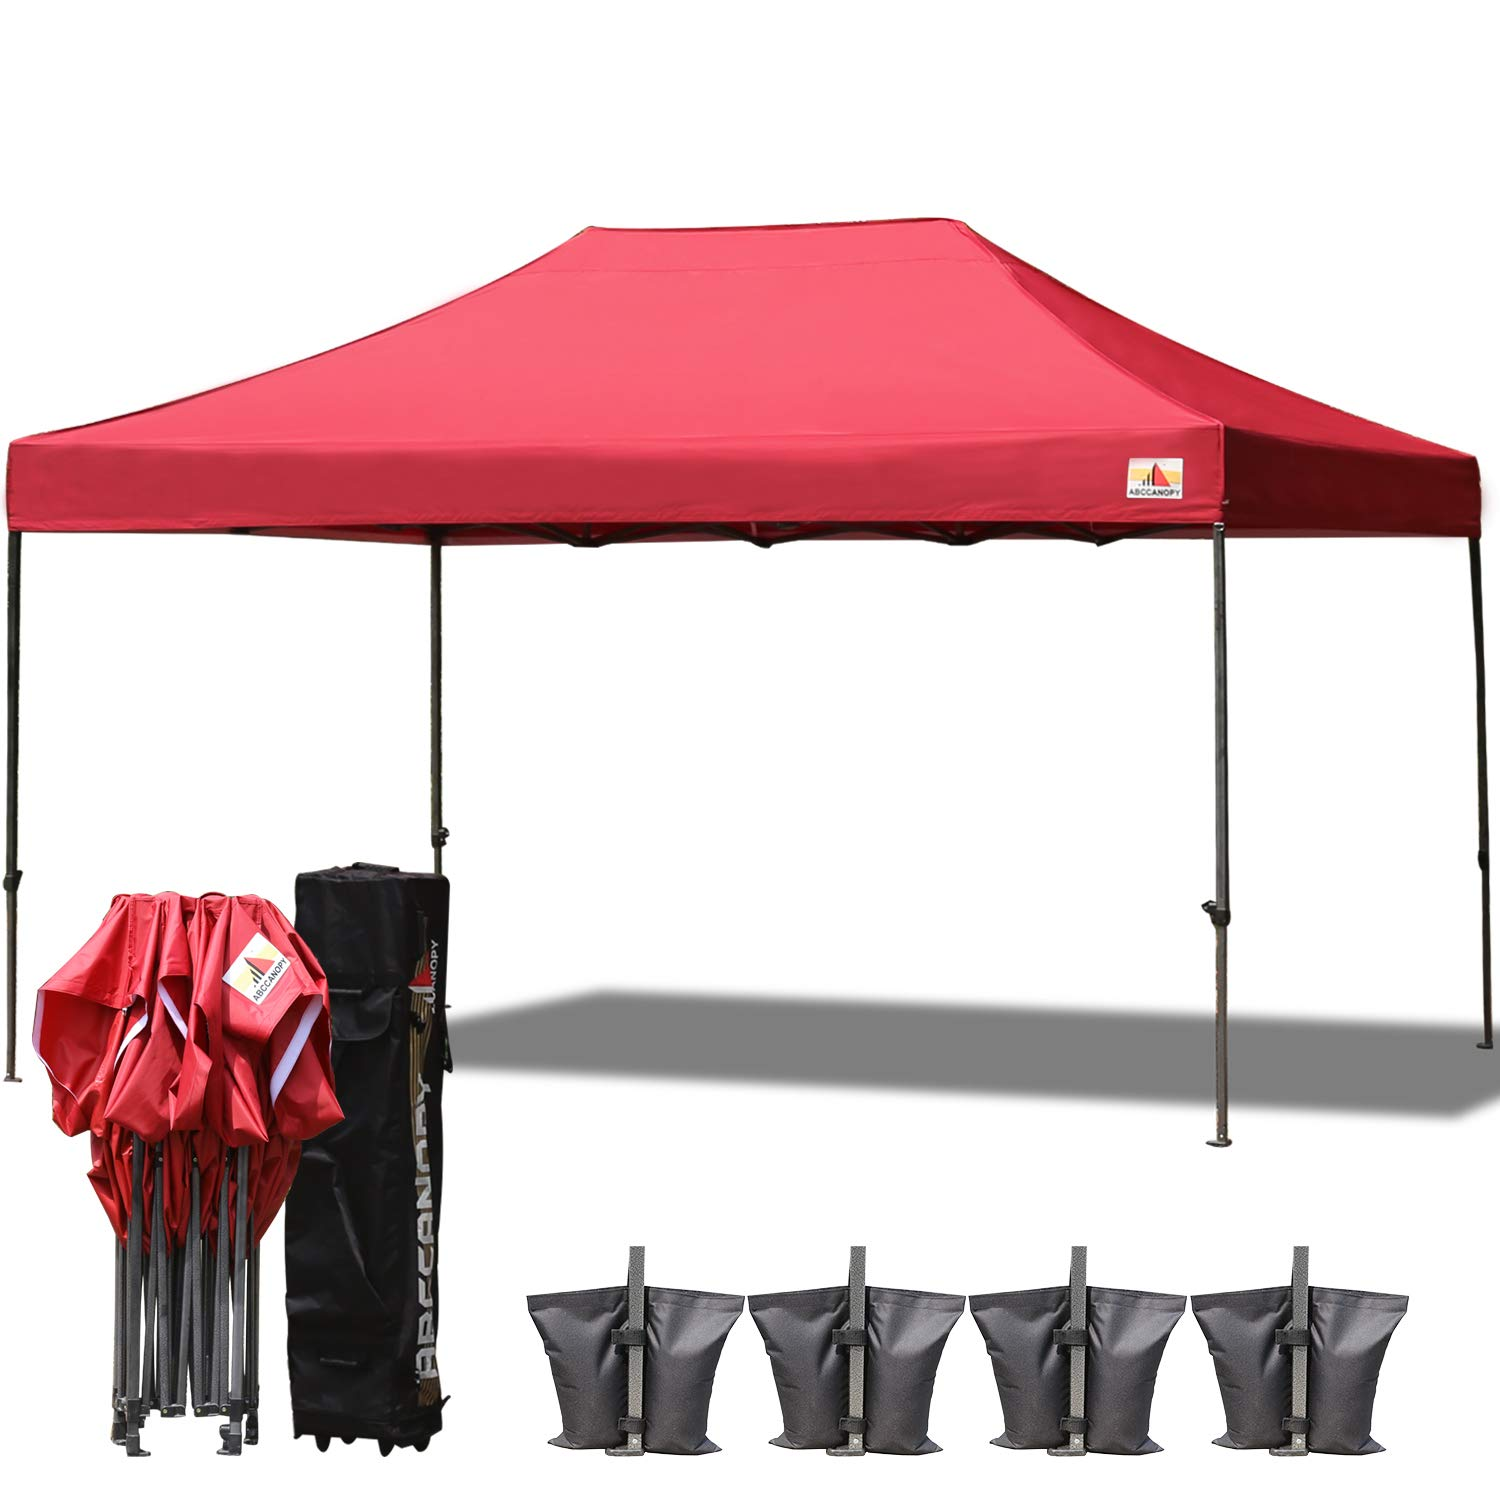 ABCCANOPY 23 Colors 10×15 Pop up Tent Instant Canopy Commercial Outdoor Canopy with Wheeled Carry Bag Bonus 4 Weight Bags Burgundy